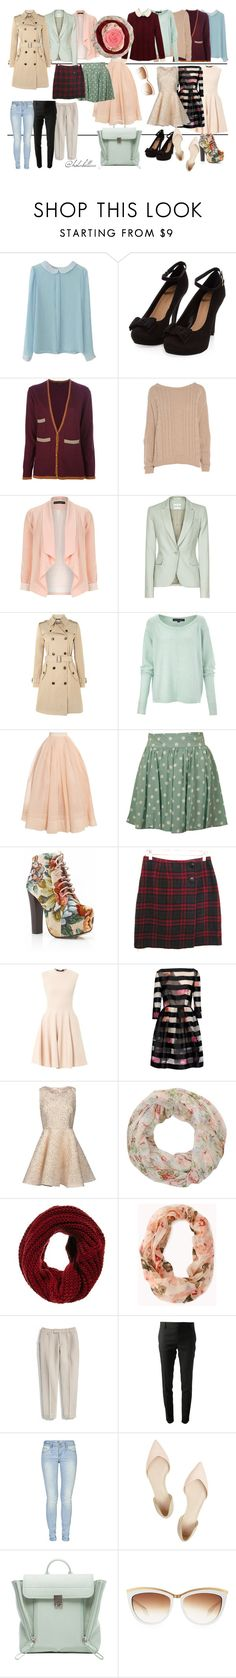 """""""Why"""" by holabellaa ❤ liked on Polyvore featuring Stine Goya, AX Paris, Dorothy Perkins, Reiss, Hallhuber, French Connection, Martin Grant, MINKPINK, Alexander McQueen and Blumarine"""